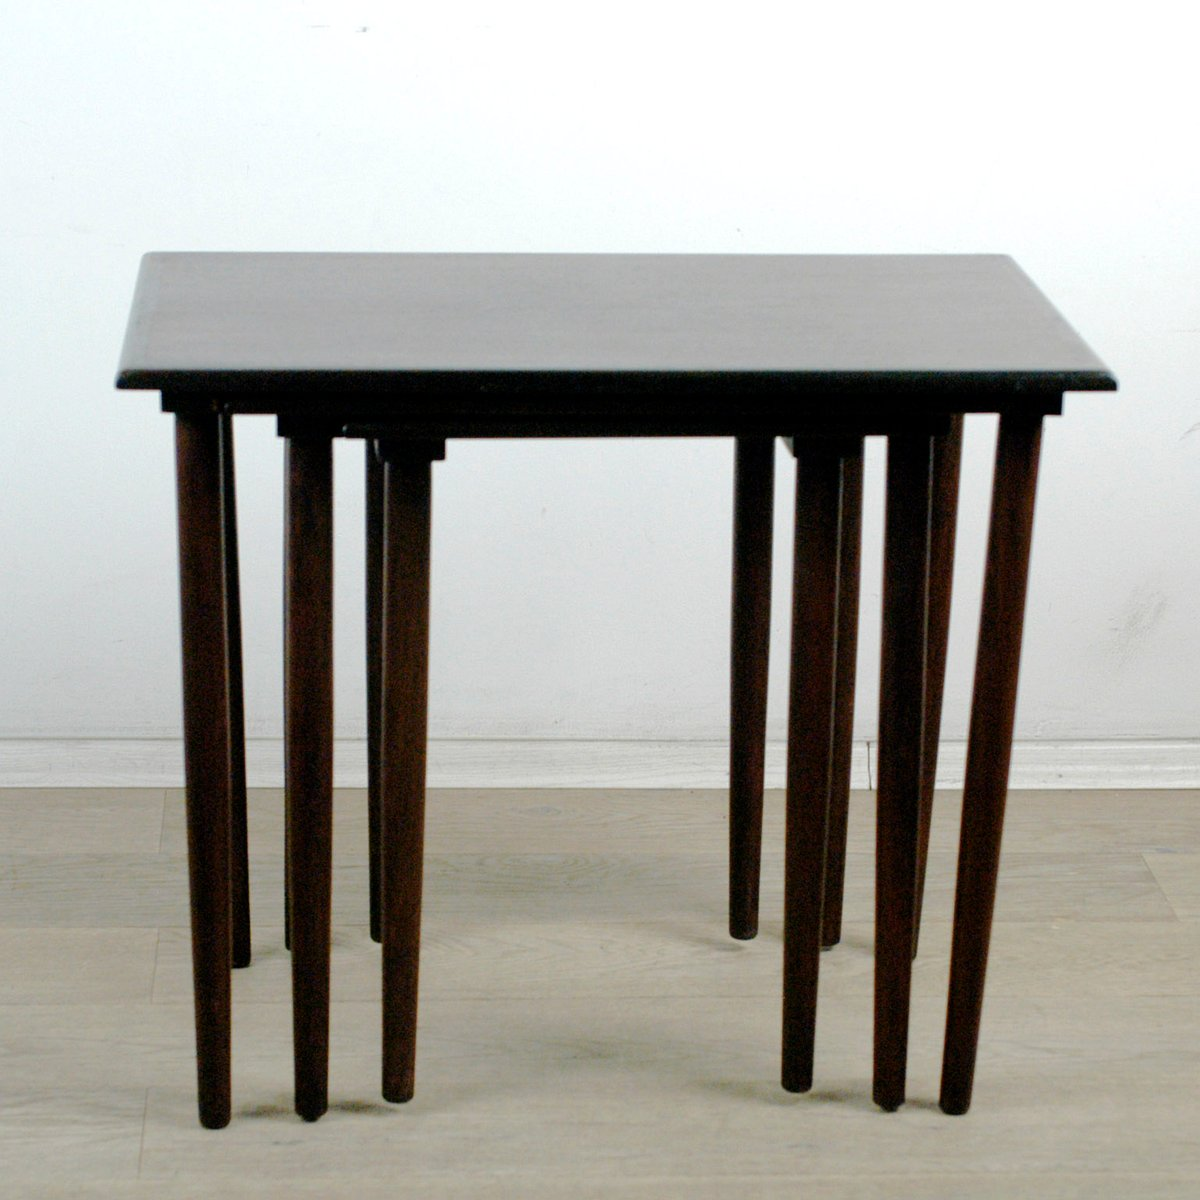 & Danish Modern Rosewood Nesting Tables Set of 3 for sale at Pamono